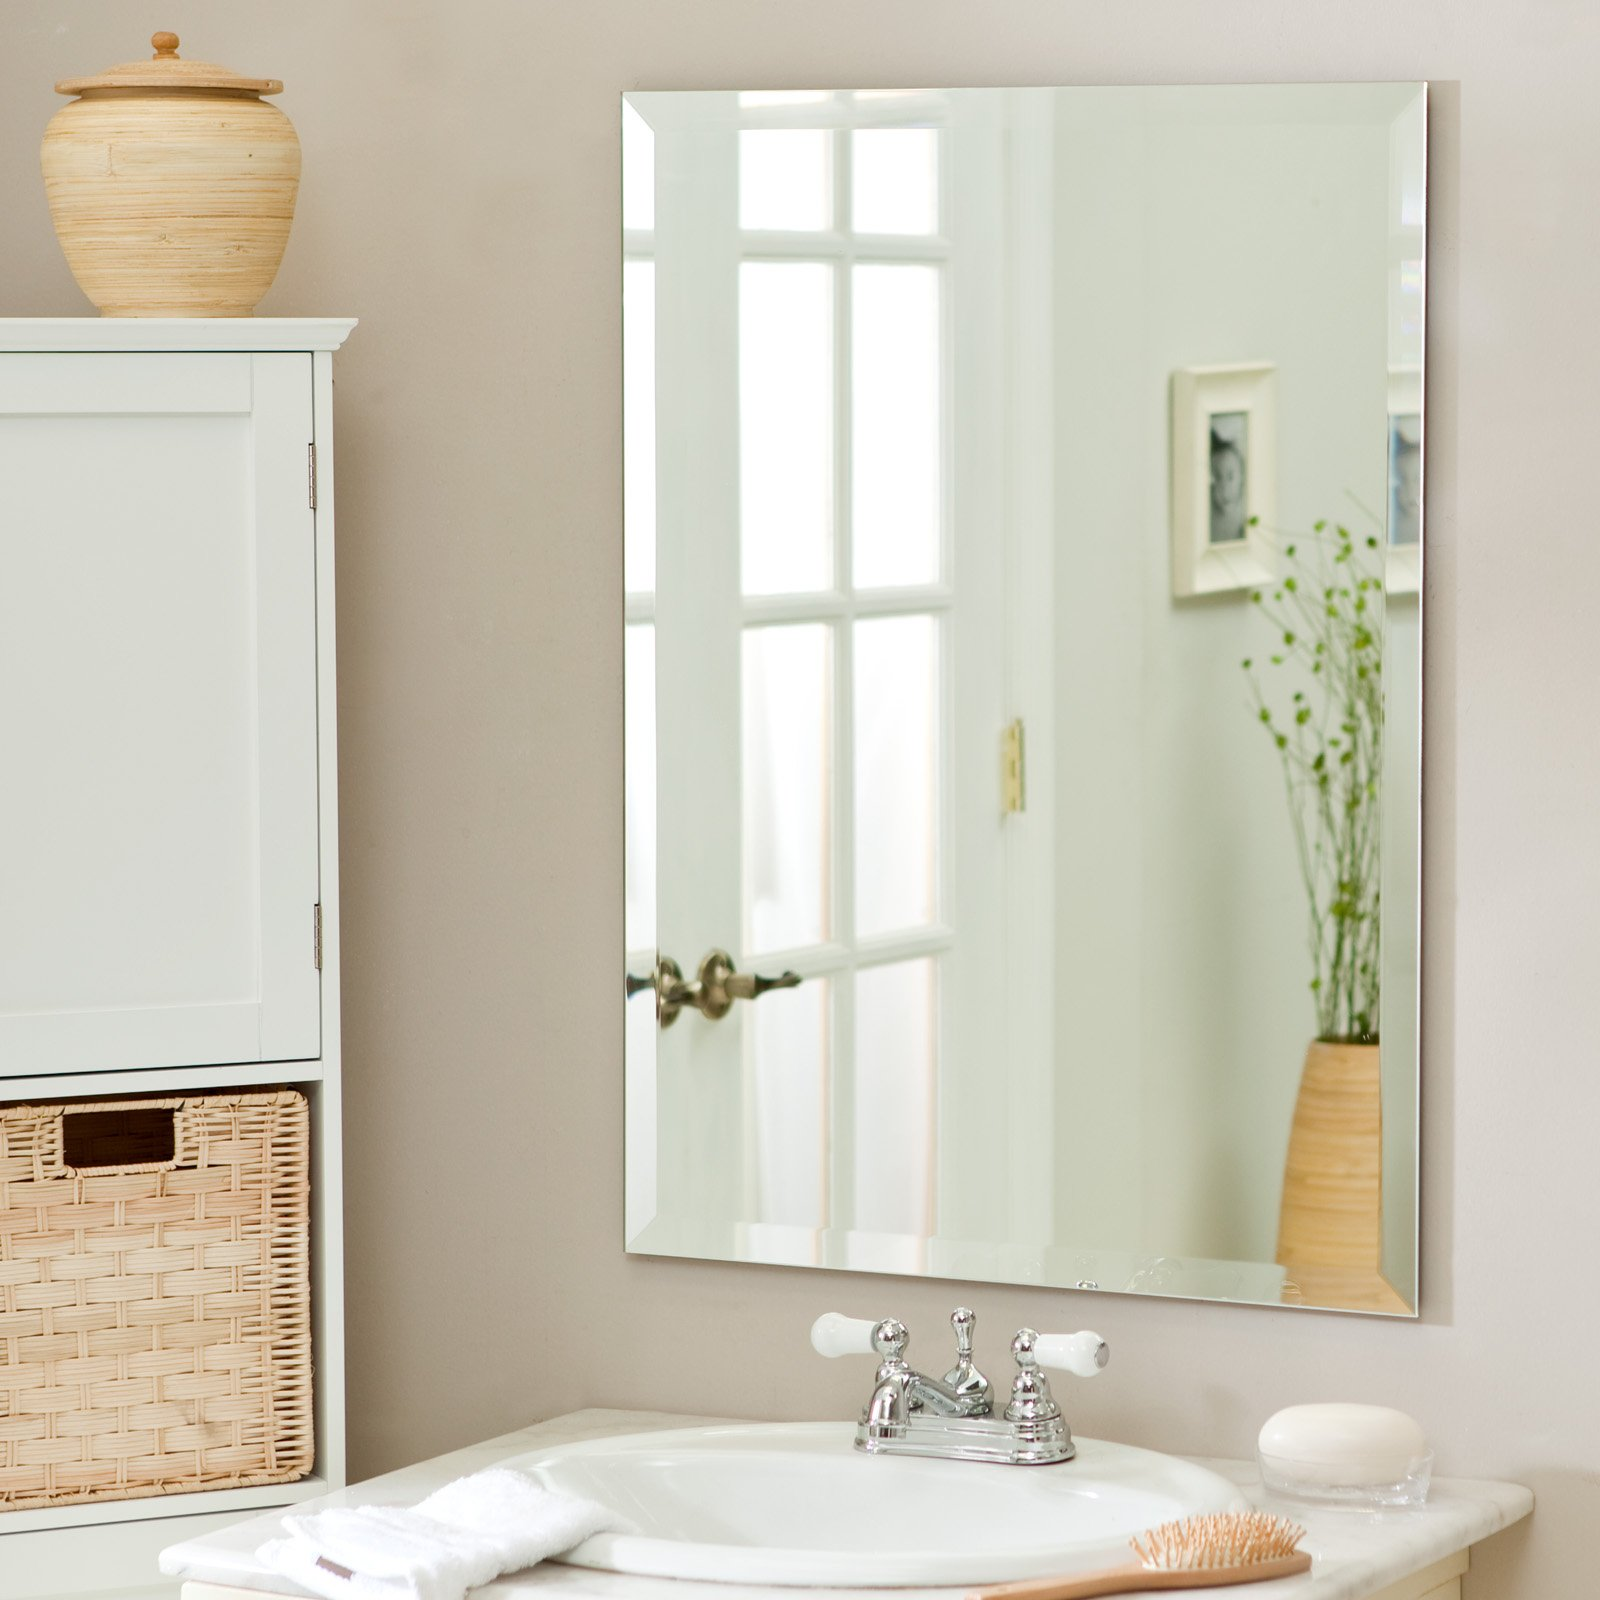 Stunning Design Of The White Sink And Beige Wall Ideas With Frameless  Bathroom Mirror Ideas